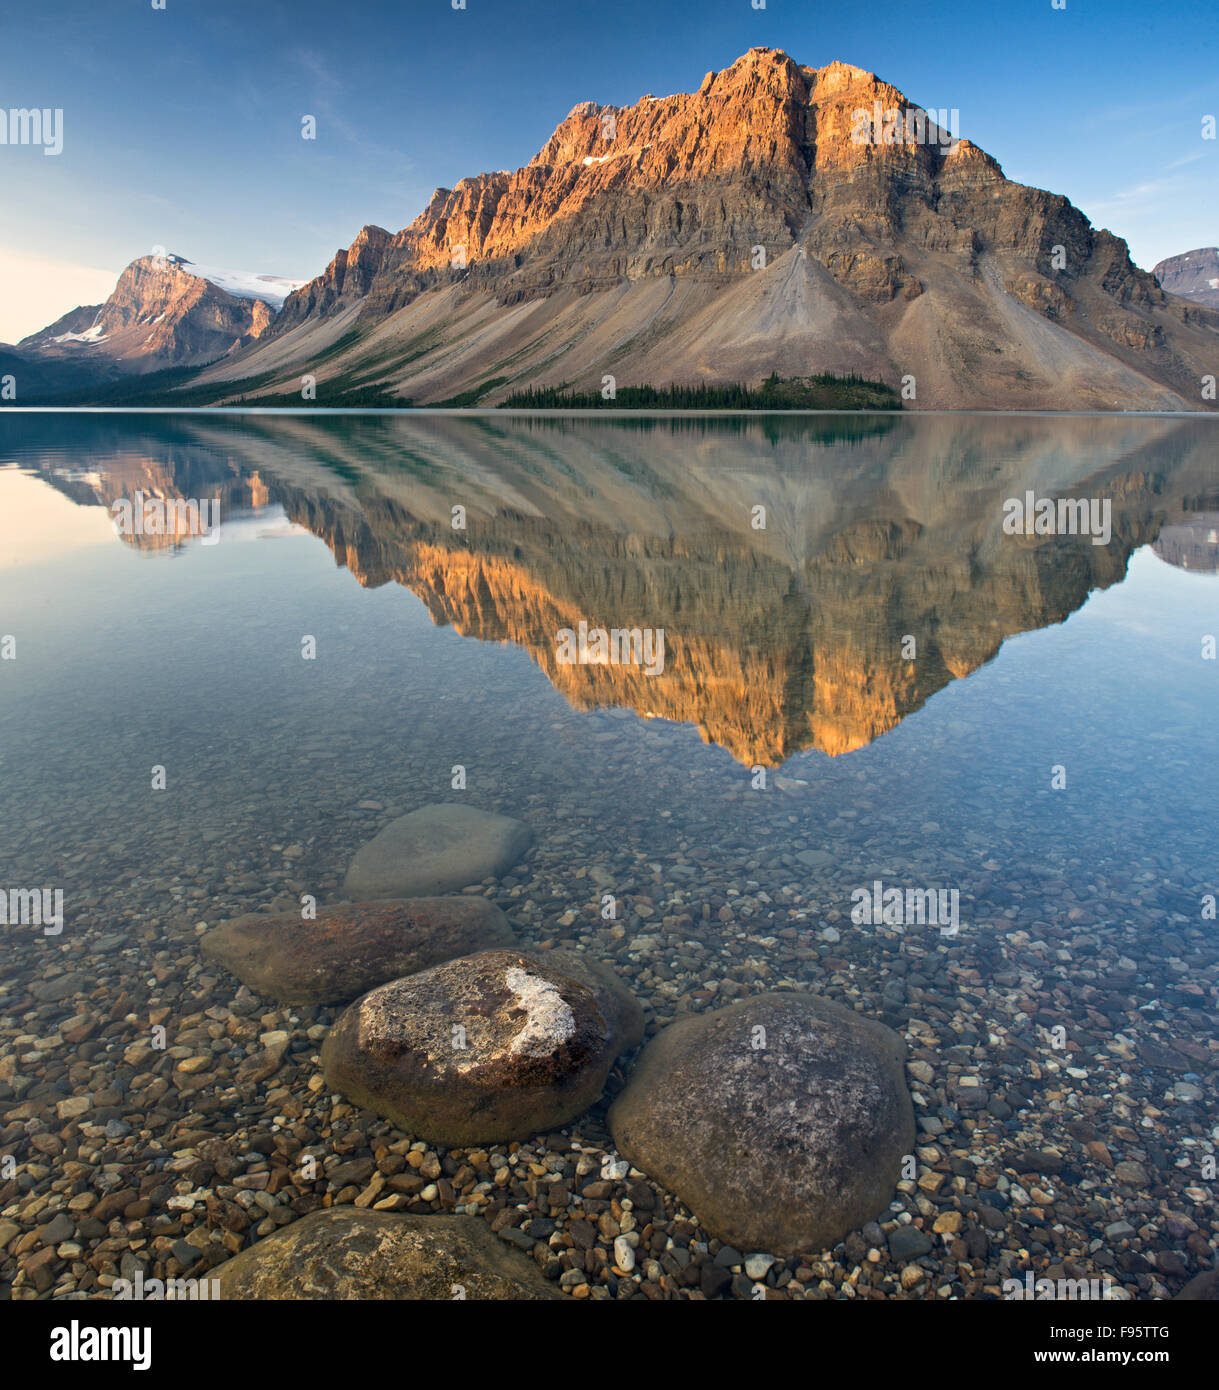 Mount Crowfoot at Bow Lake, Banff National Park, Alberta, Canada - Stock Image